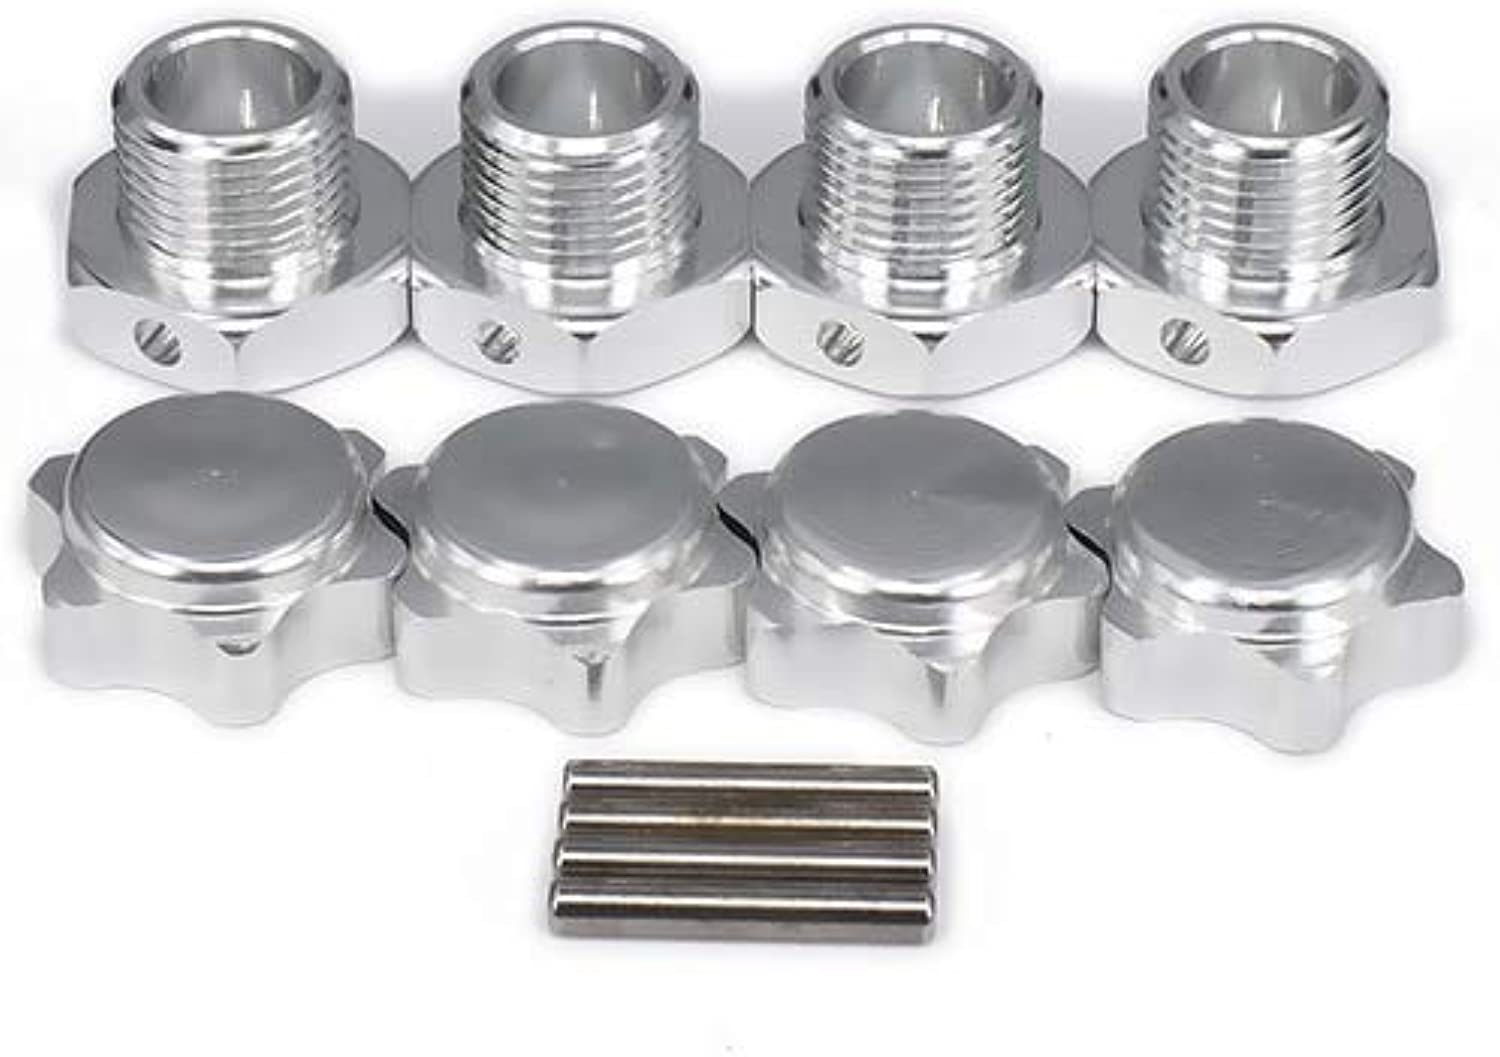 Generic M17 17mm Aluminum Wheel Hex Hubs Adapter Nut Pin AntiDust Cover for 1 8 RC Car HPI HSP Traxxas Losi Axial Kyosho Tamiya Redcat Silver